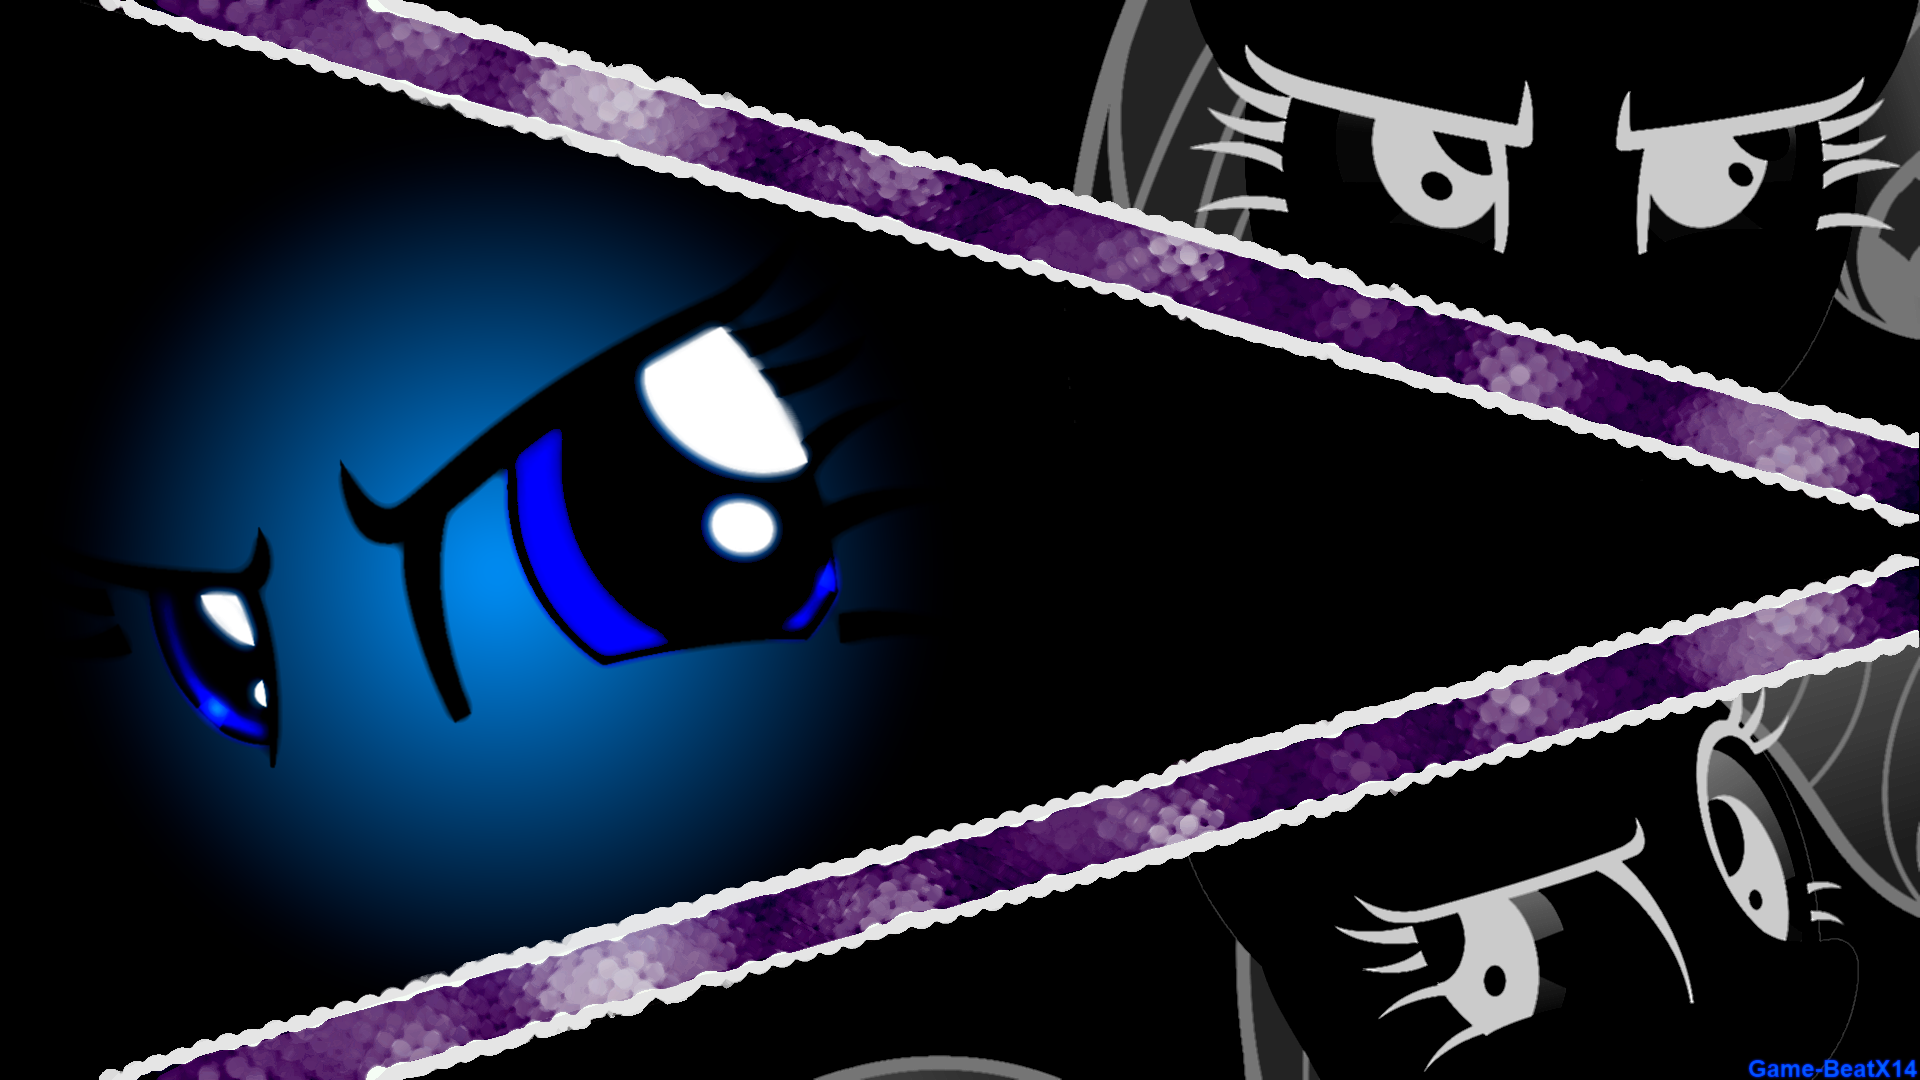 Rarity Eyes Wallpaper by craftybrony, Dharthez, Game-BeatX14 and Hawk9mm